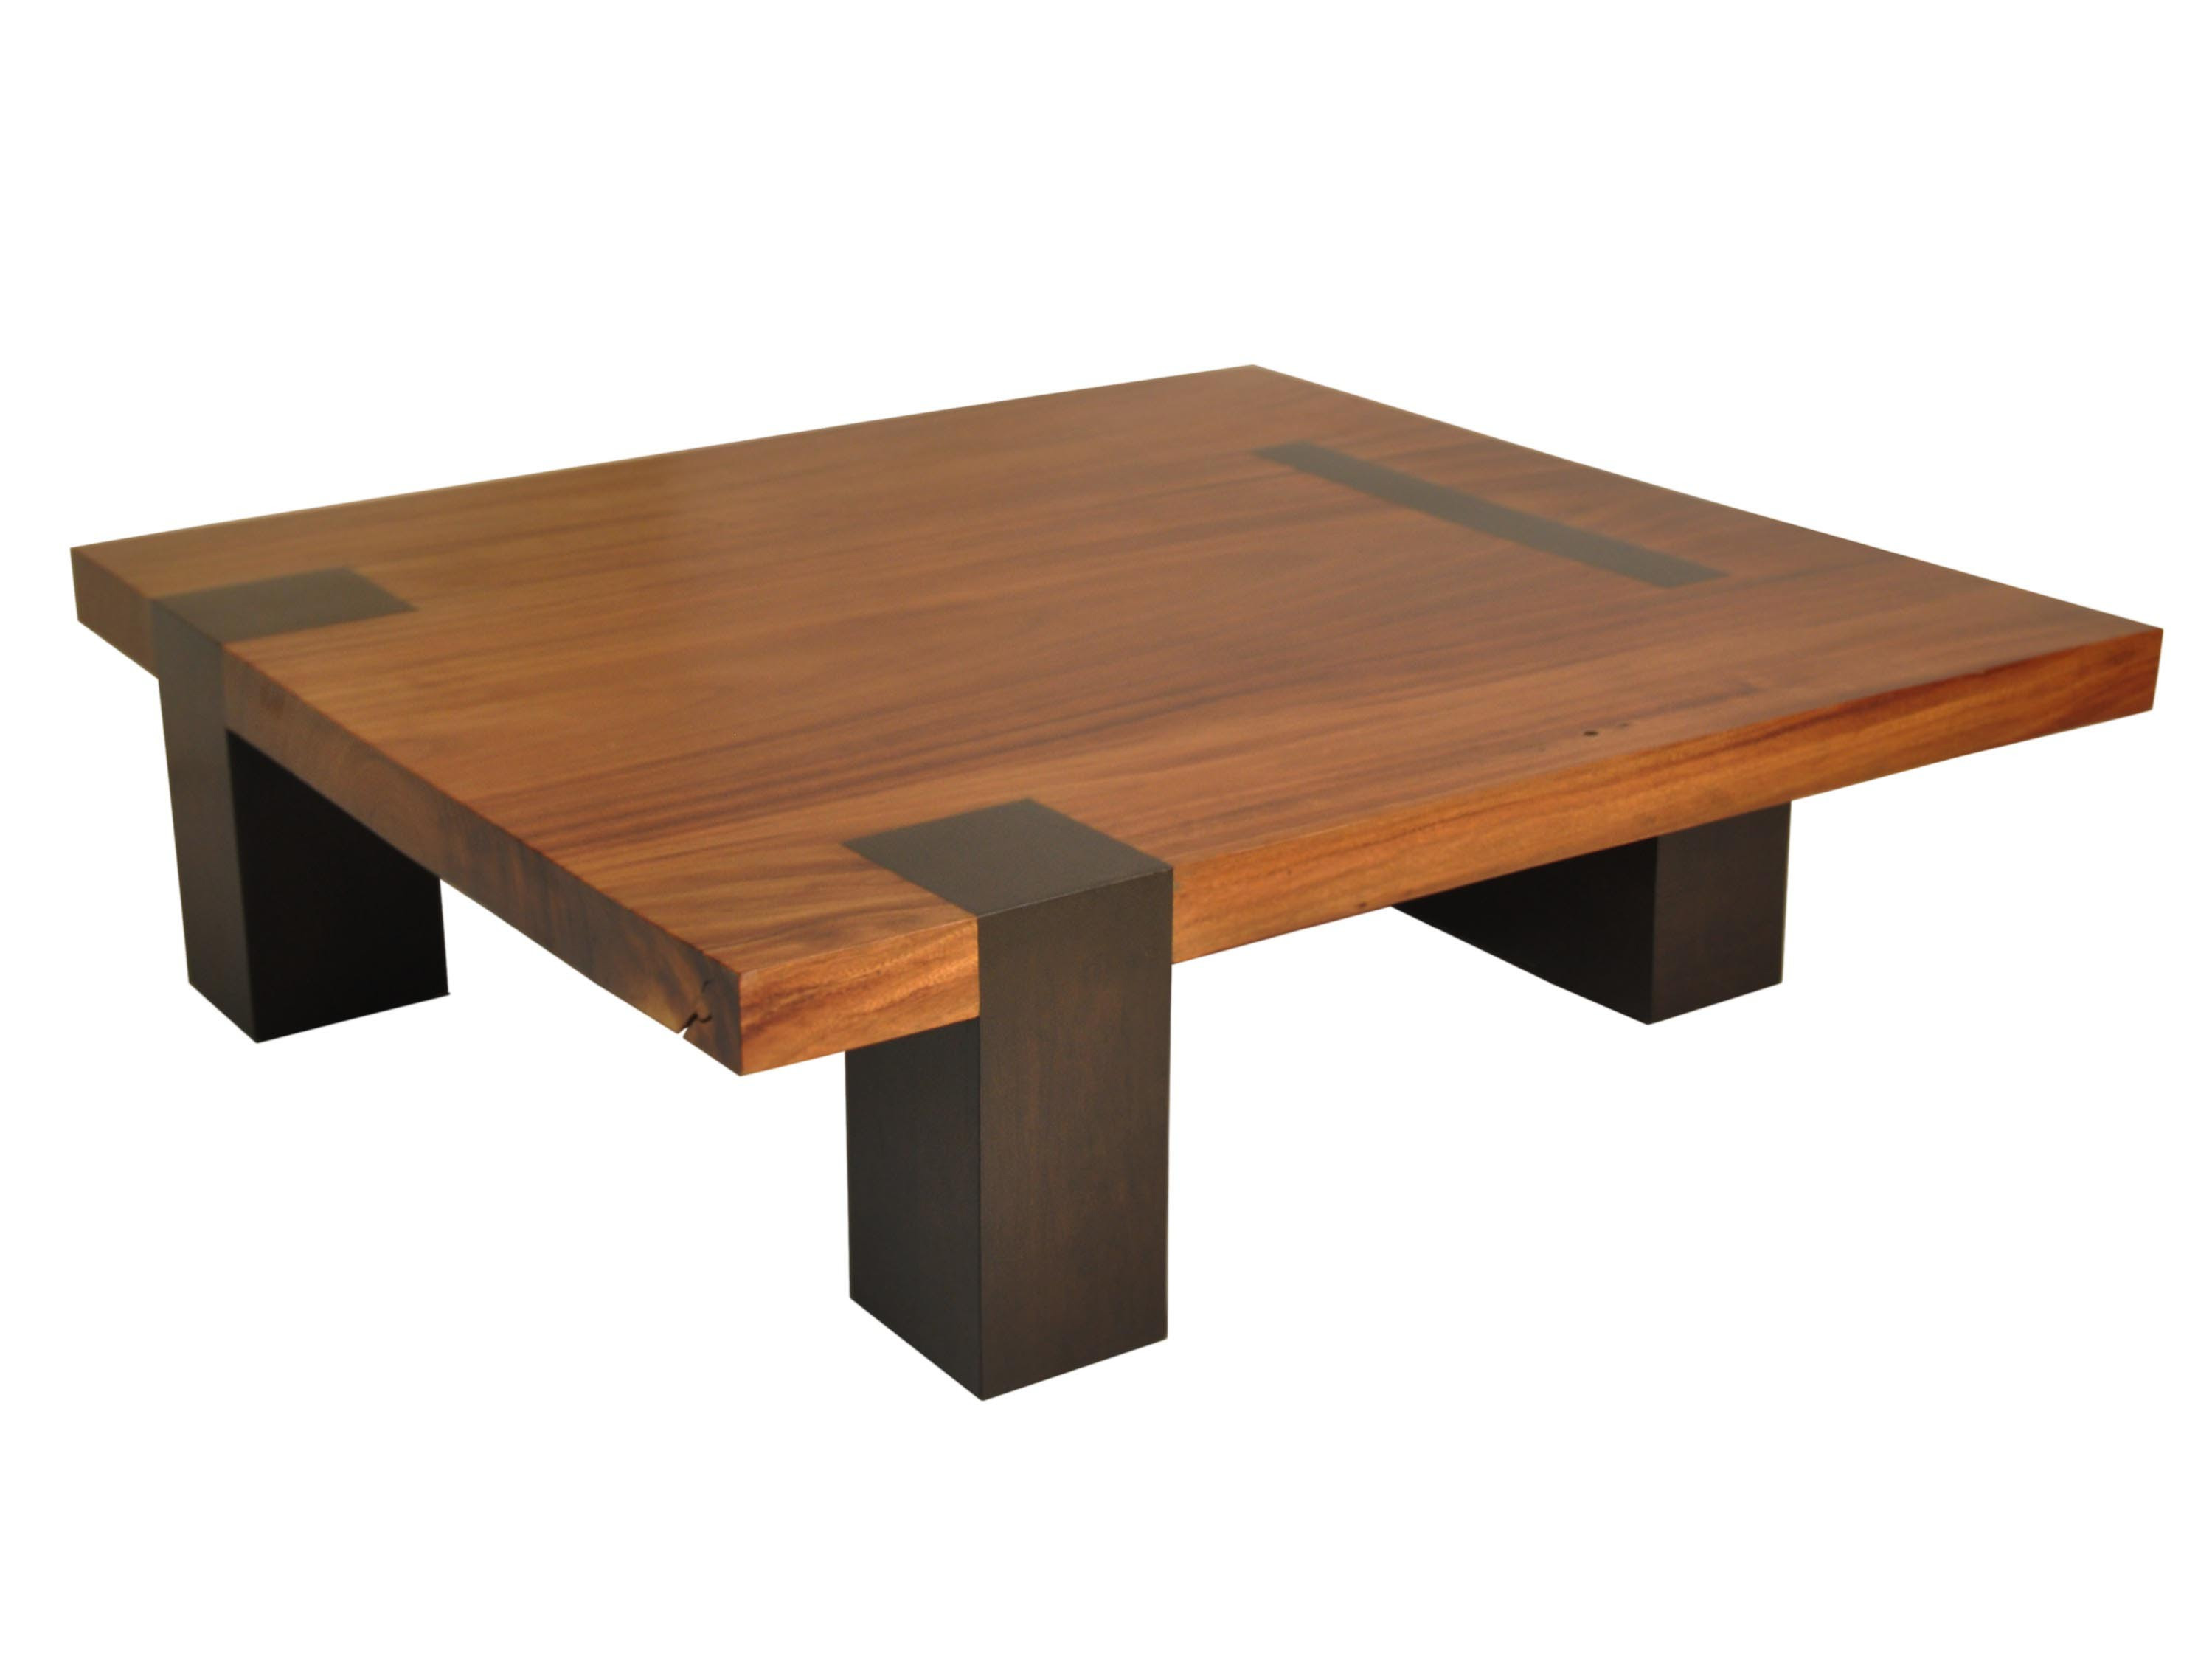 Custom Coffee Table - any Models for All Tastes   Coffee Table Design Ideas